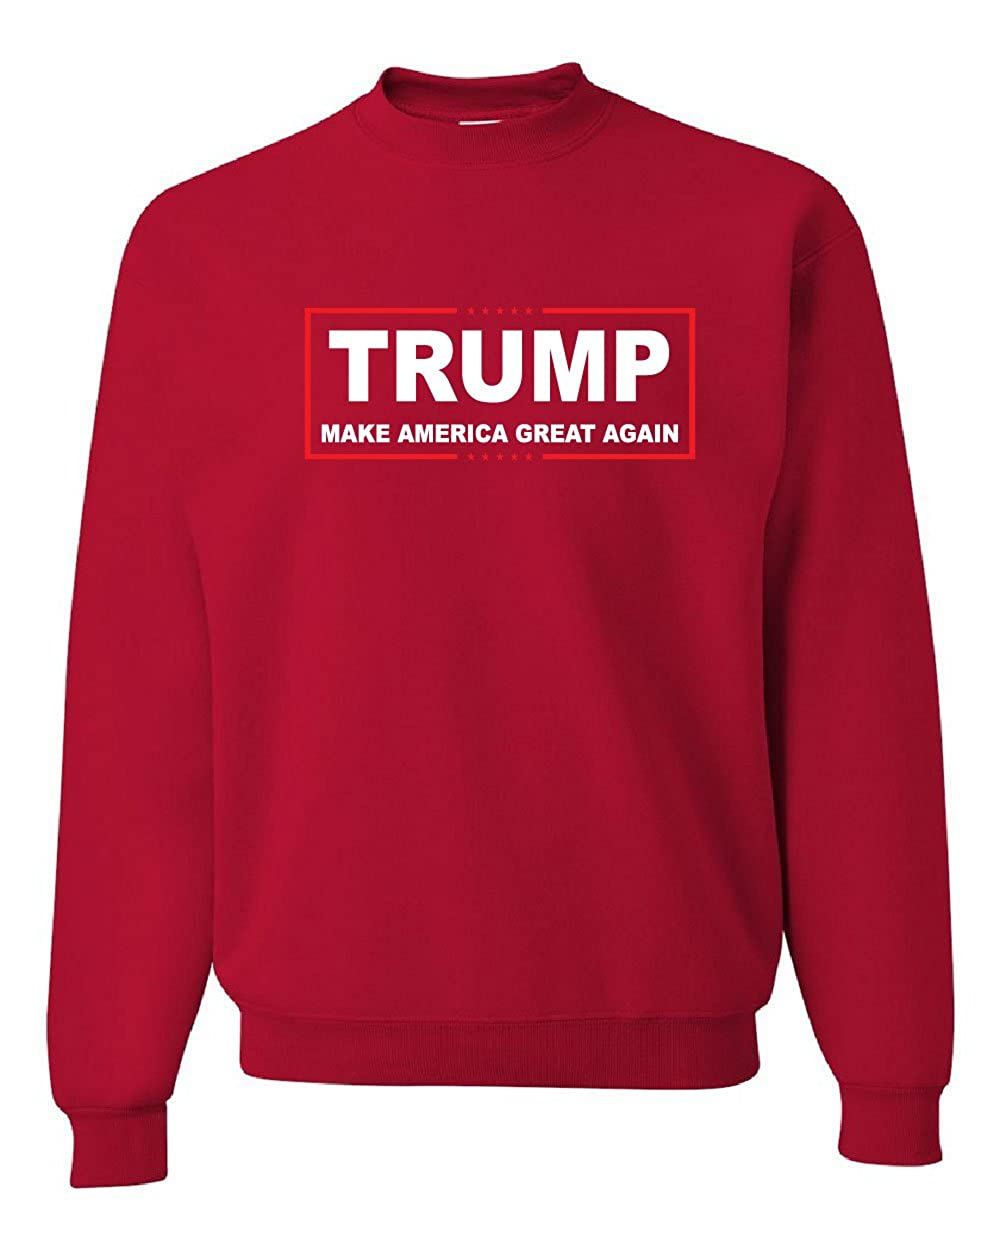 Amazon.com: TRUMP Crew Neck Sweatshirt Make America Great Again ...